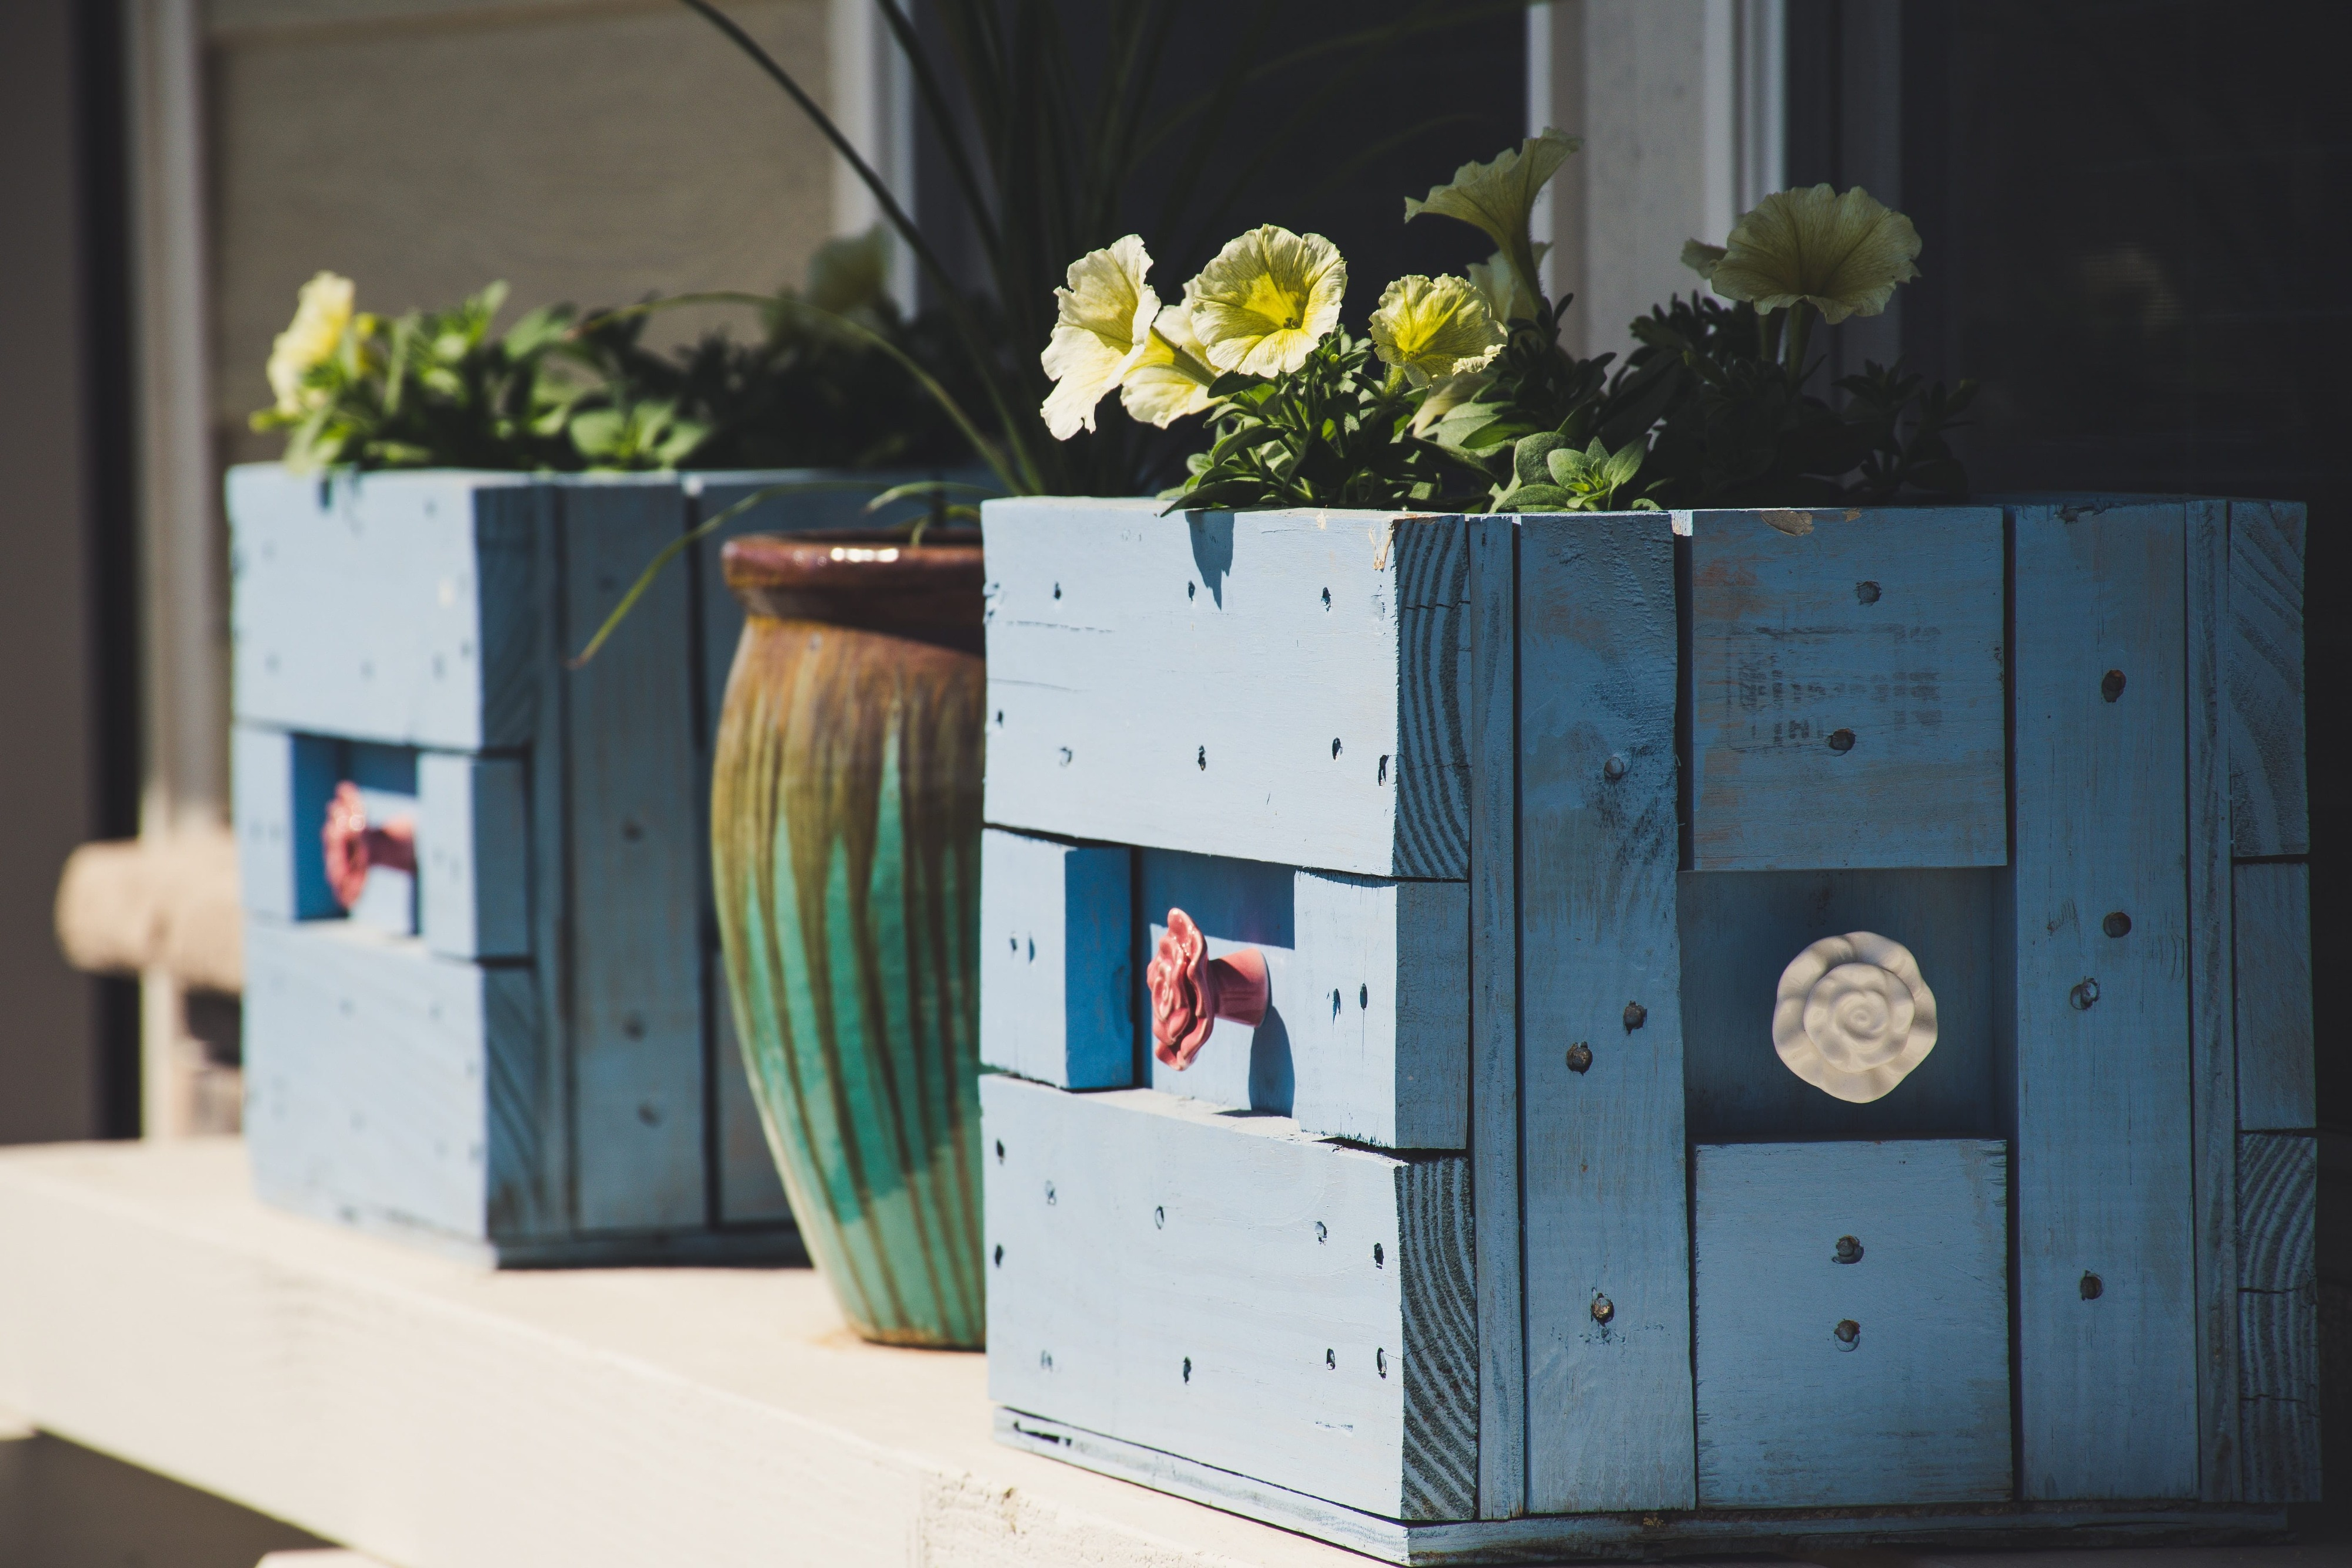 tips for zero waste and waste free life